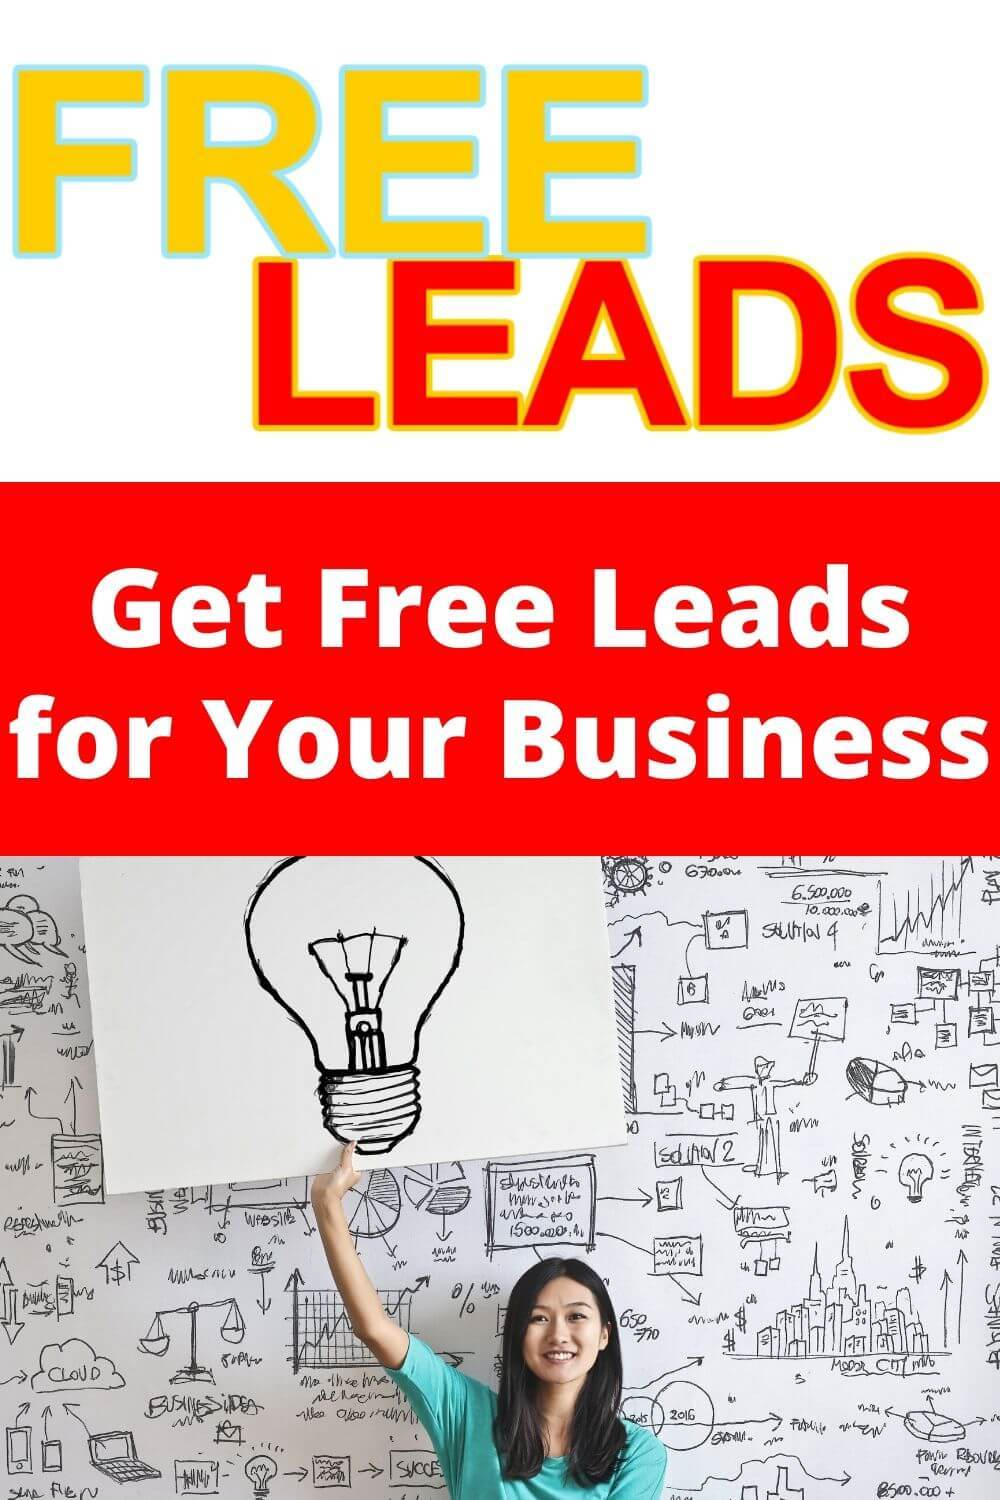 Get Free Leads for Your Business